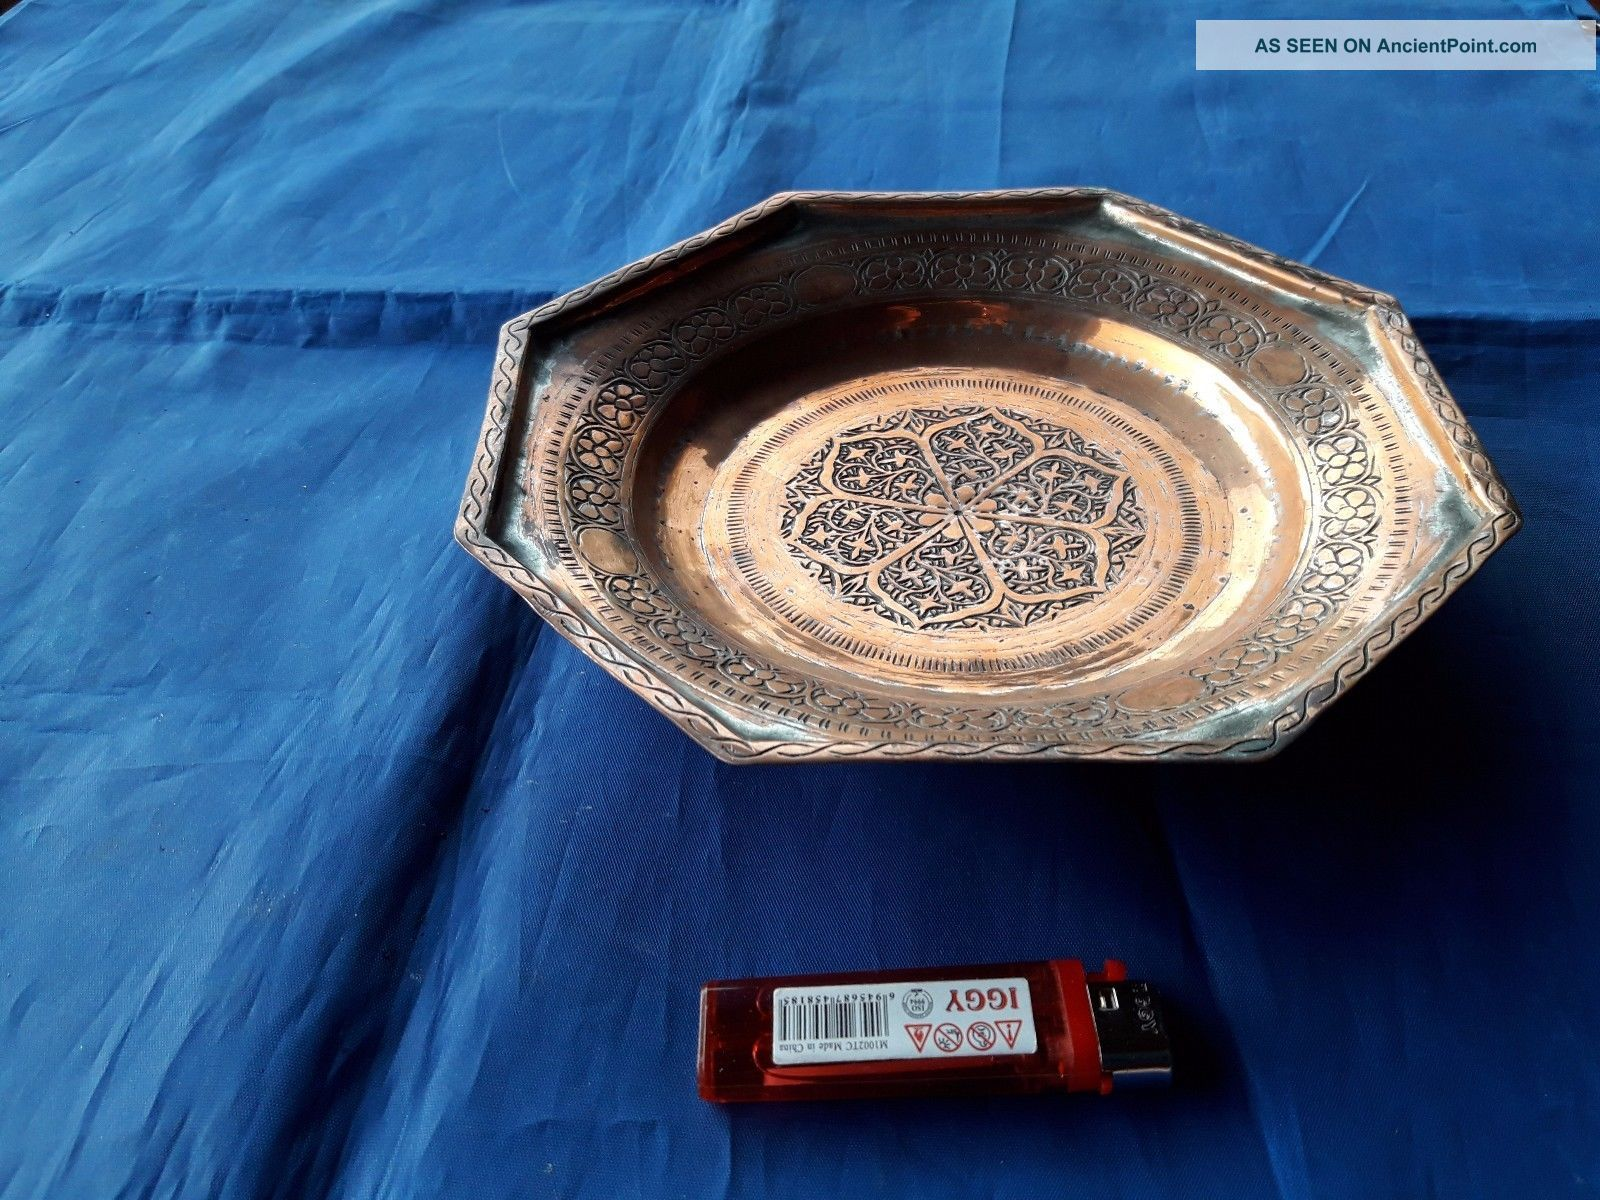 Hand - Crafted Fruit Tray From The Period Of The Ottoman Empire Xviii Century 2. Other Antique Home & Hearth photo